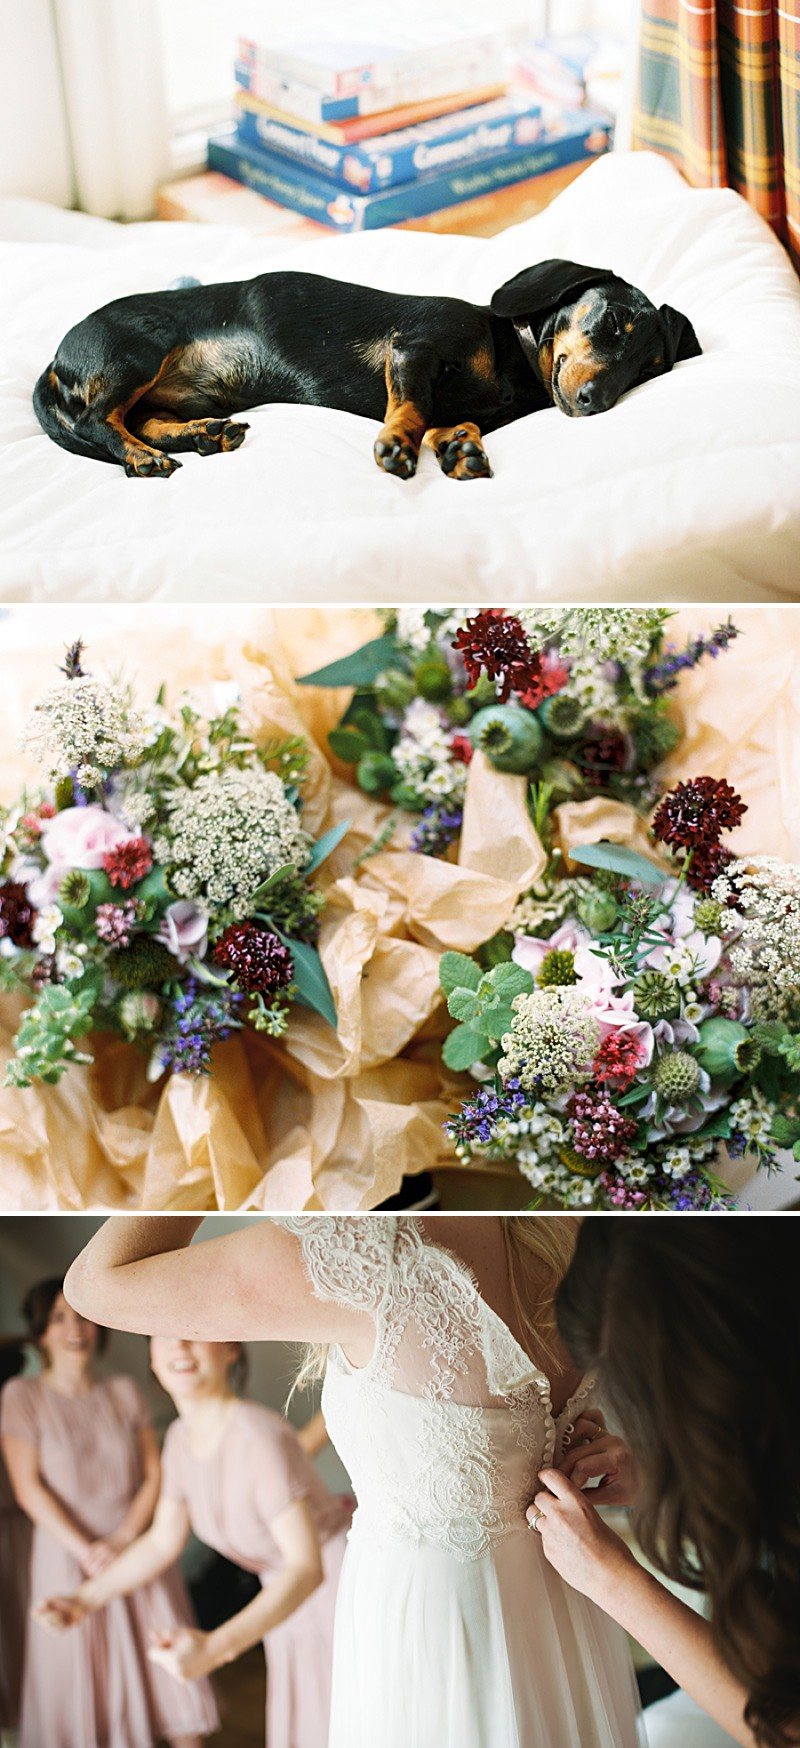 A Scottish Highlands Wedding At Coos Cathedral With A Raimon Bundo Weddding Dress And A Craspedia And Succulent Bouquet Photographed By Ann Kathrin Koch._0002